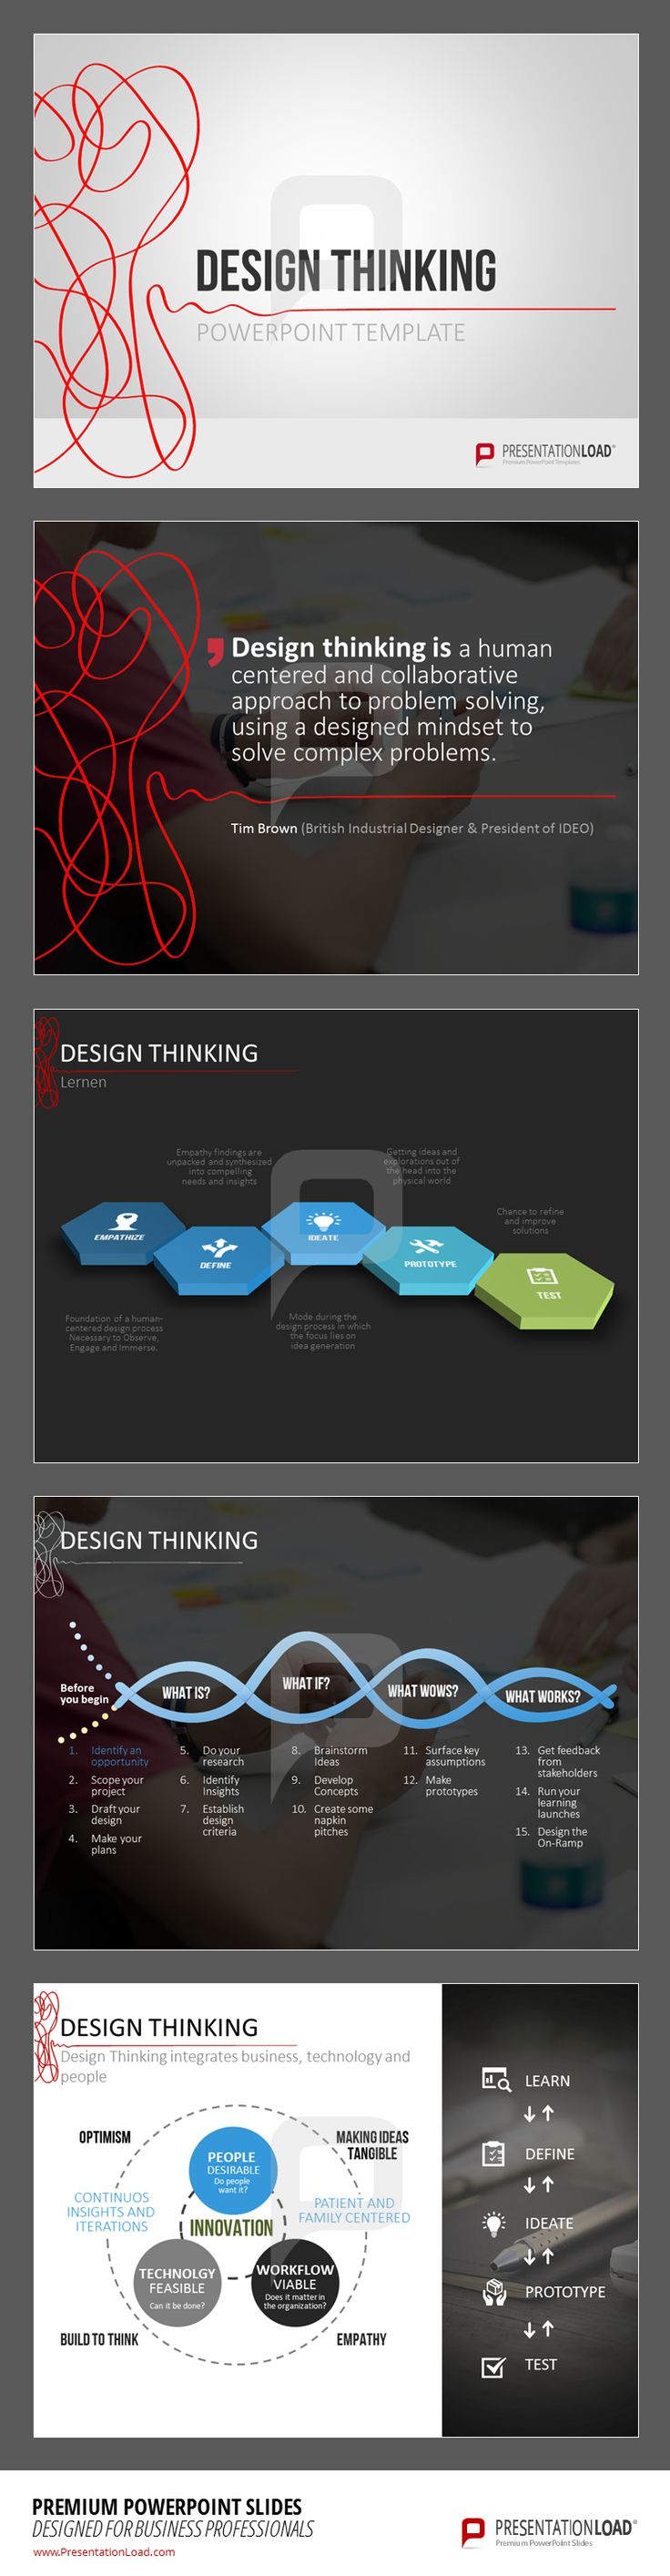 well designed powerpoint templates - 46 best images about innovation management powerpoint